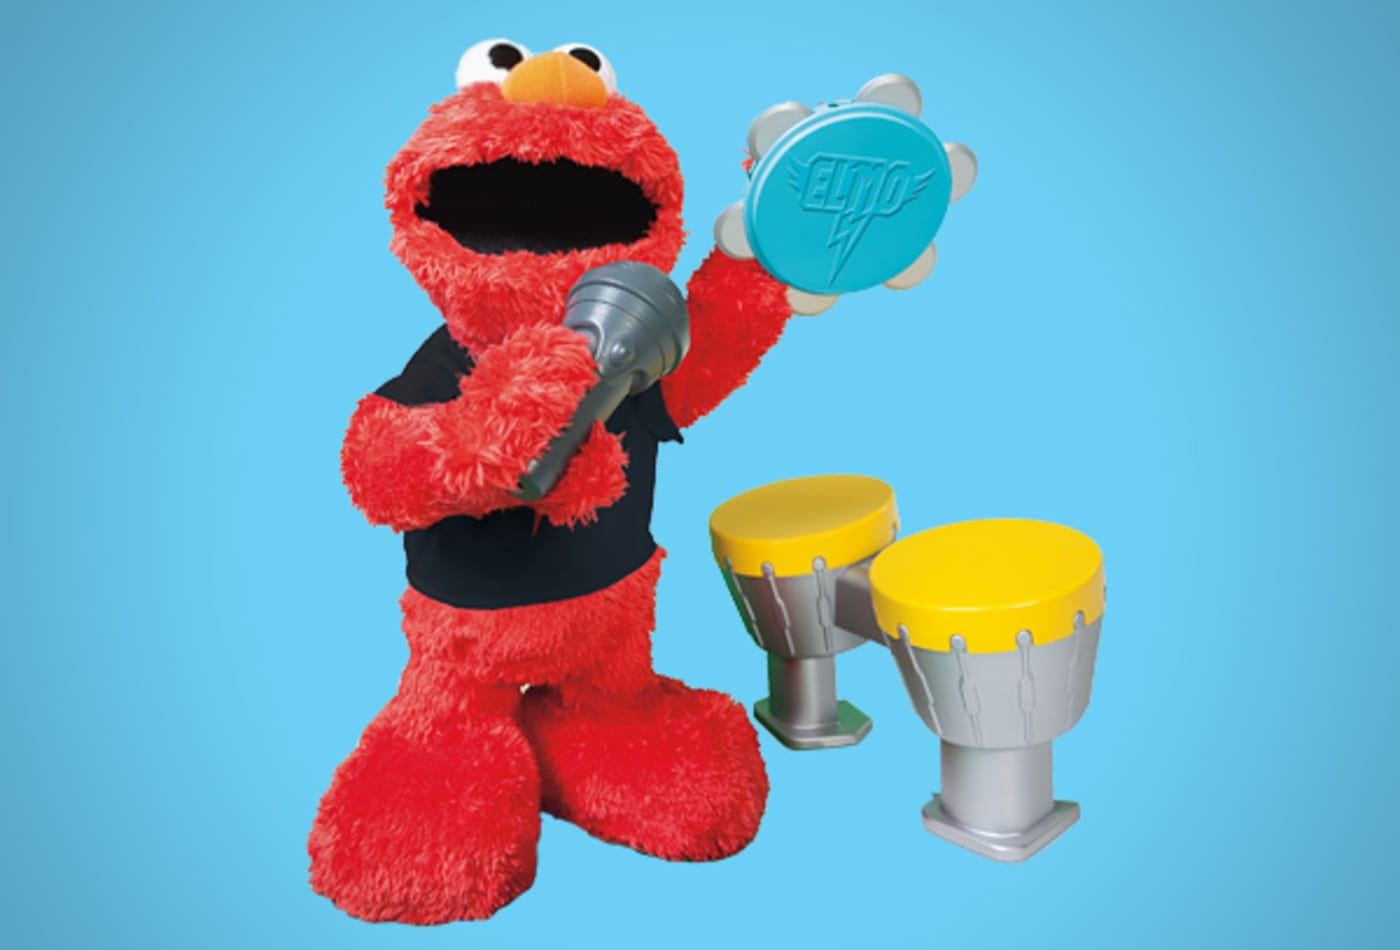 CNBC-toys-lets-rock-elmo1-600.jpg